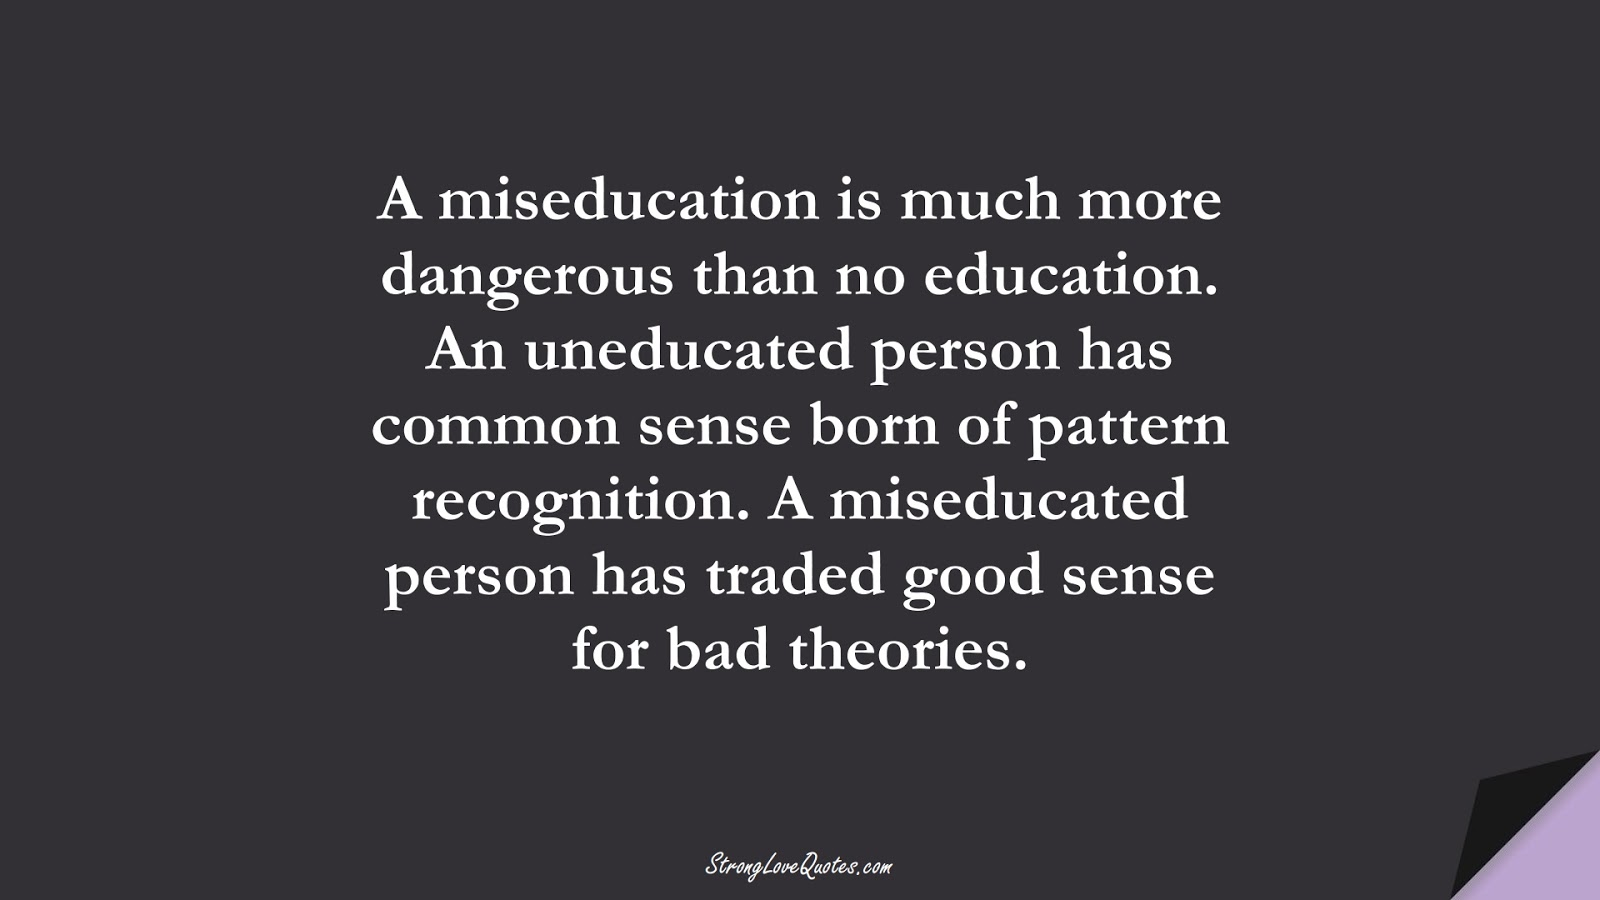 A miseducation is much more dangerous than no education. An uneducated person has common sense born of pattern recognition. A miseducated person has traded good sense for bad theories.FALSE